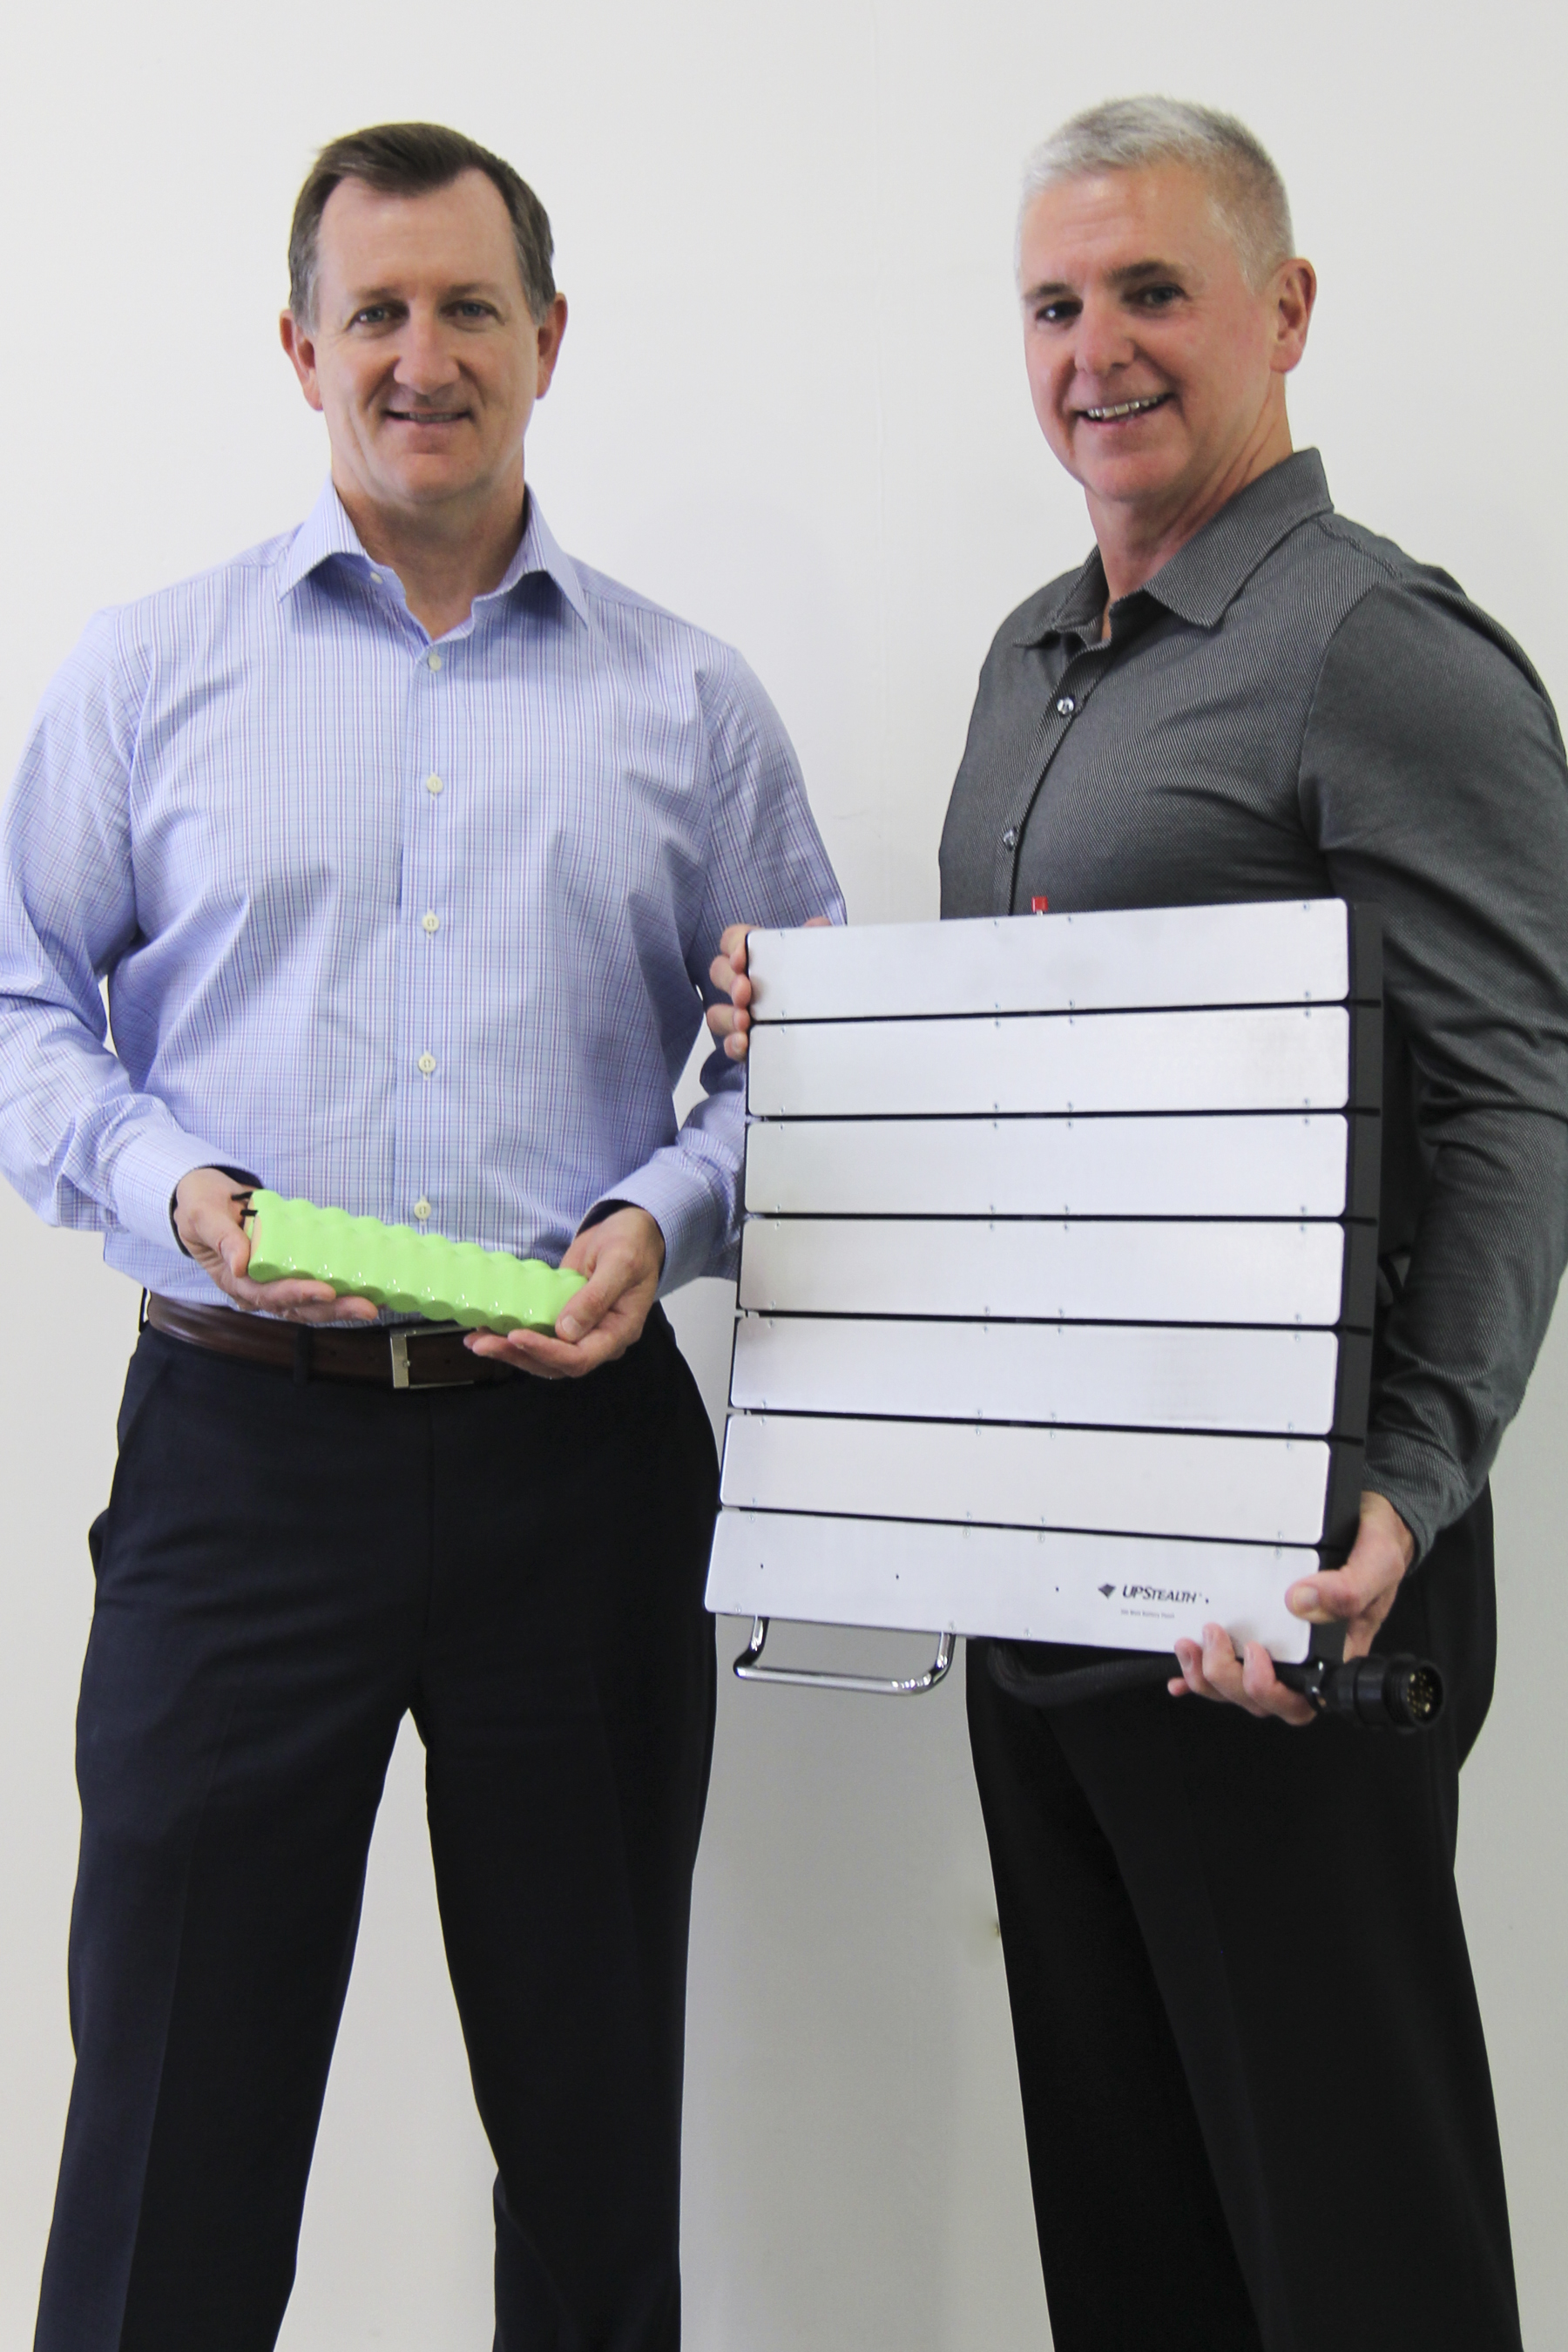 ZincFive's Tod Higinbotham & Tim Hysell with the patented nickel-zinc cells and UPStealth Battery Backup System